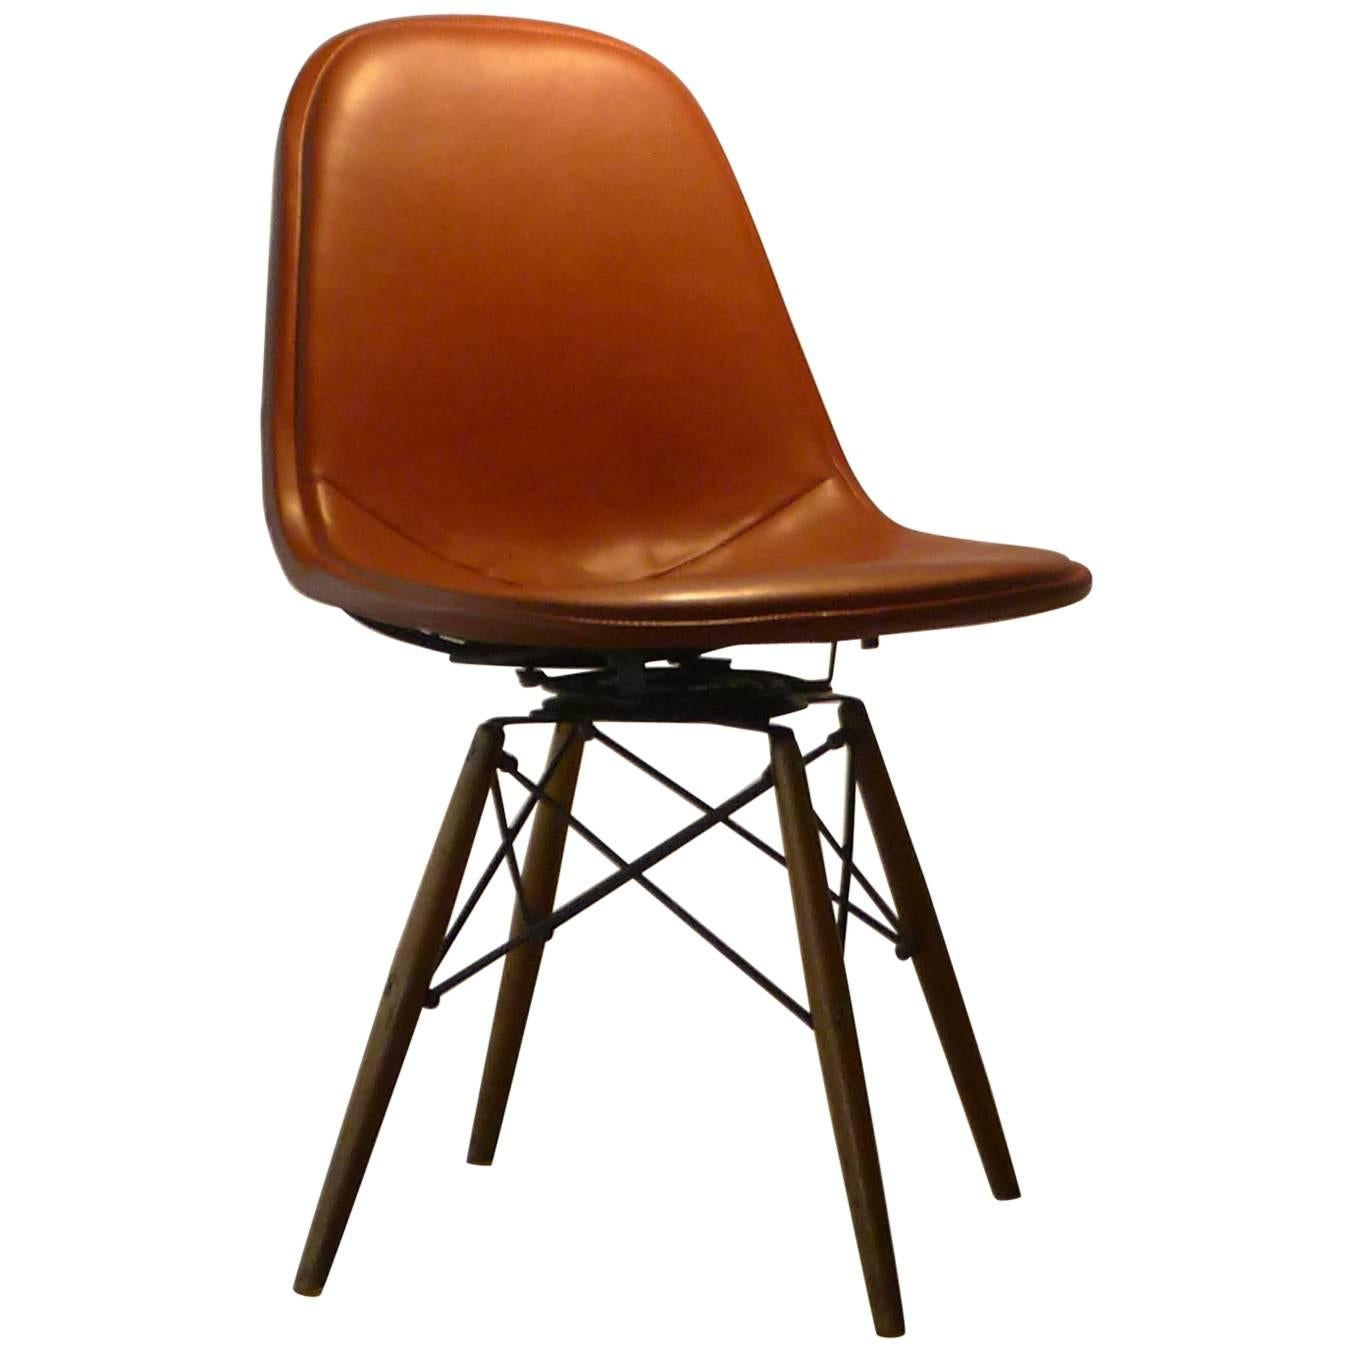 seng chicago chair bed argos co uk eames furniture: chairs, tables & more - 467 for sale at 1stdibs